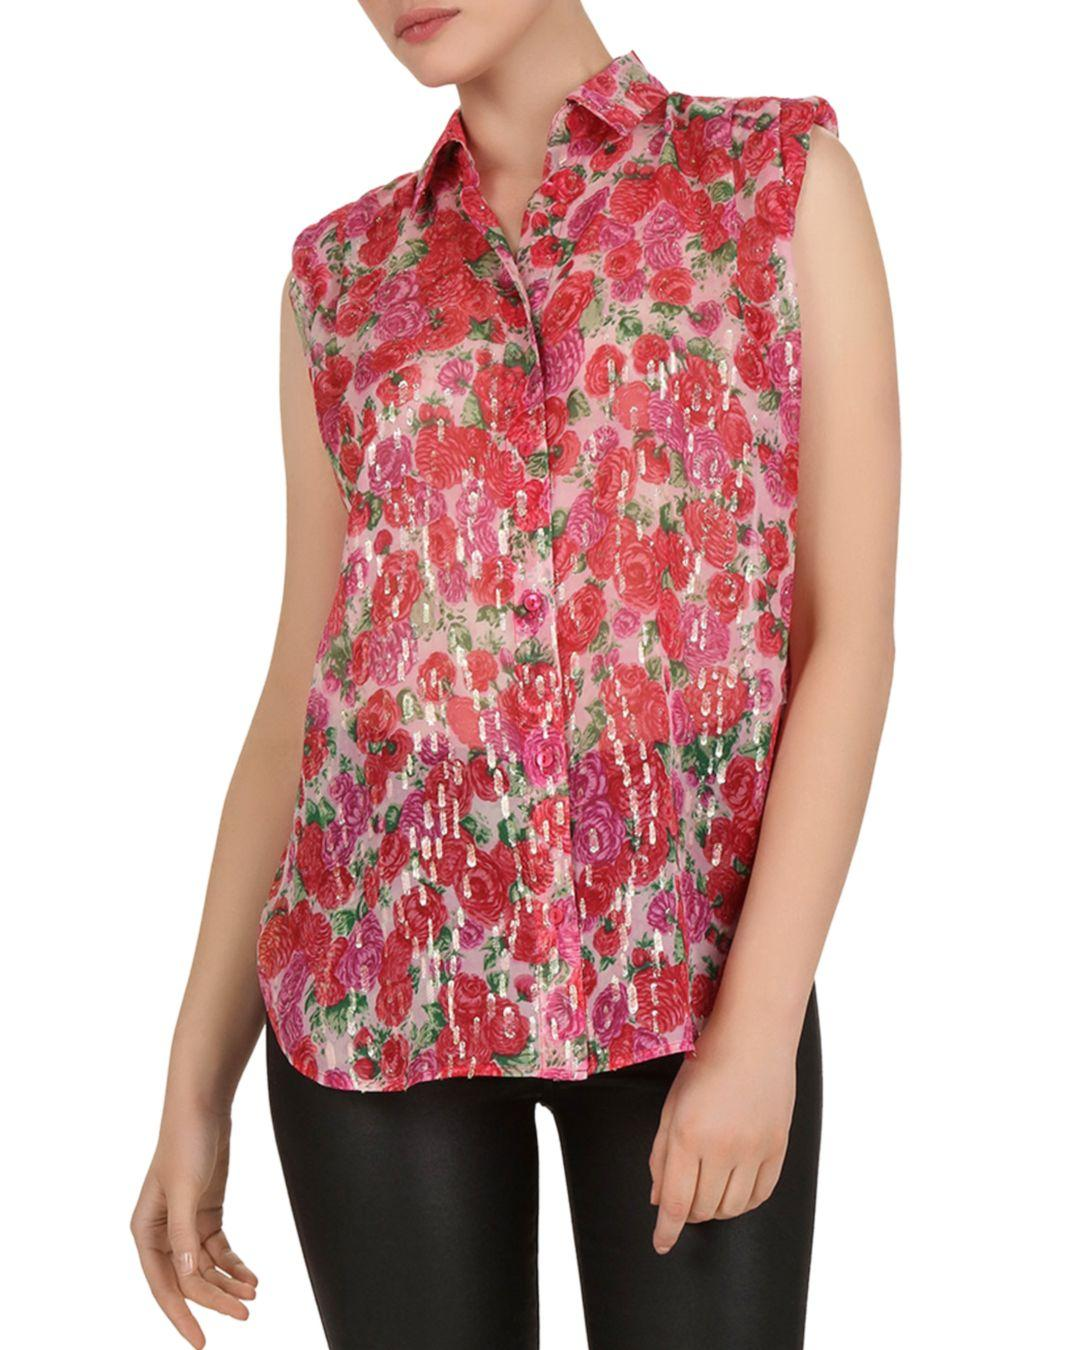 0a39d2870f0158 Lyst - The Kooples Sleeveless Cherry Blossom-printed Shirt in Pink